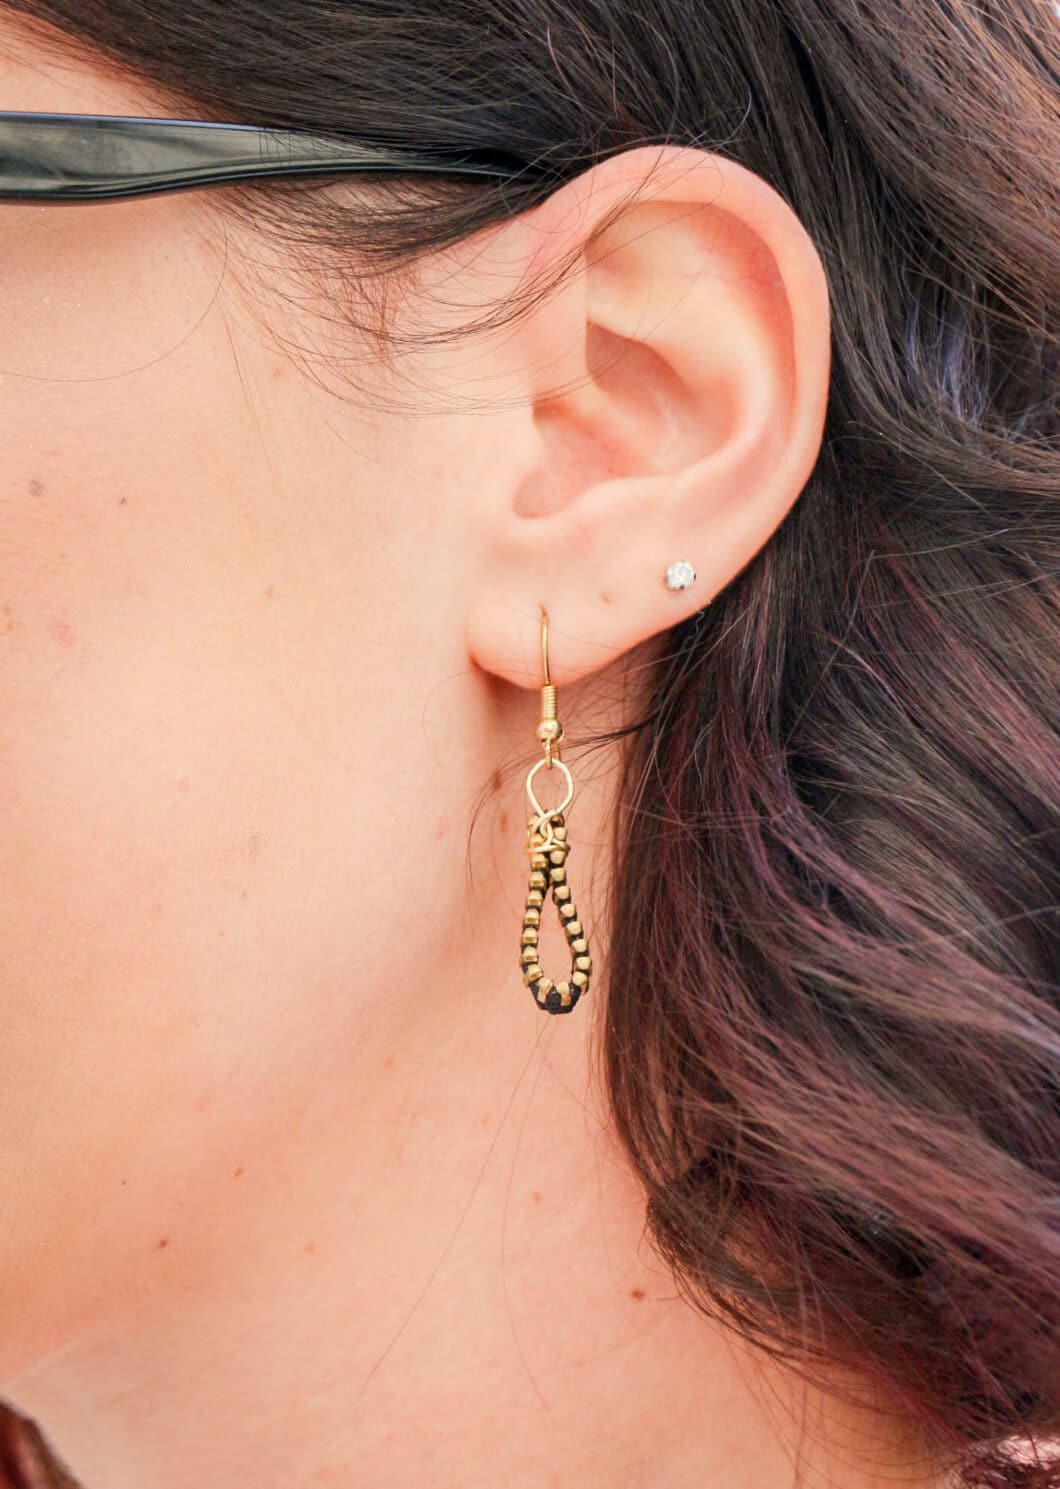 zipper earings